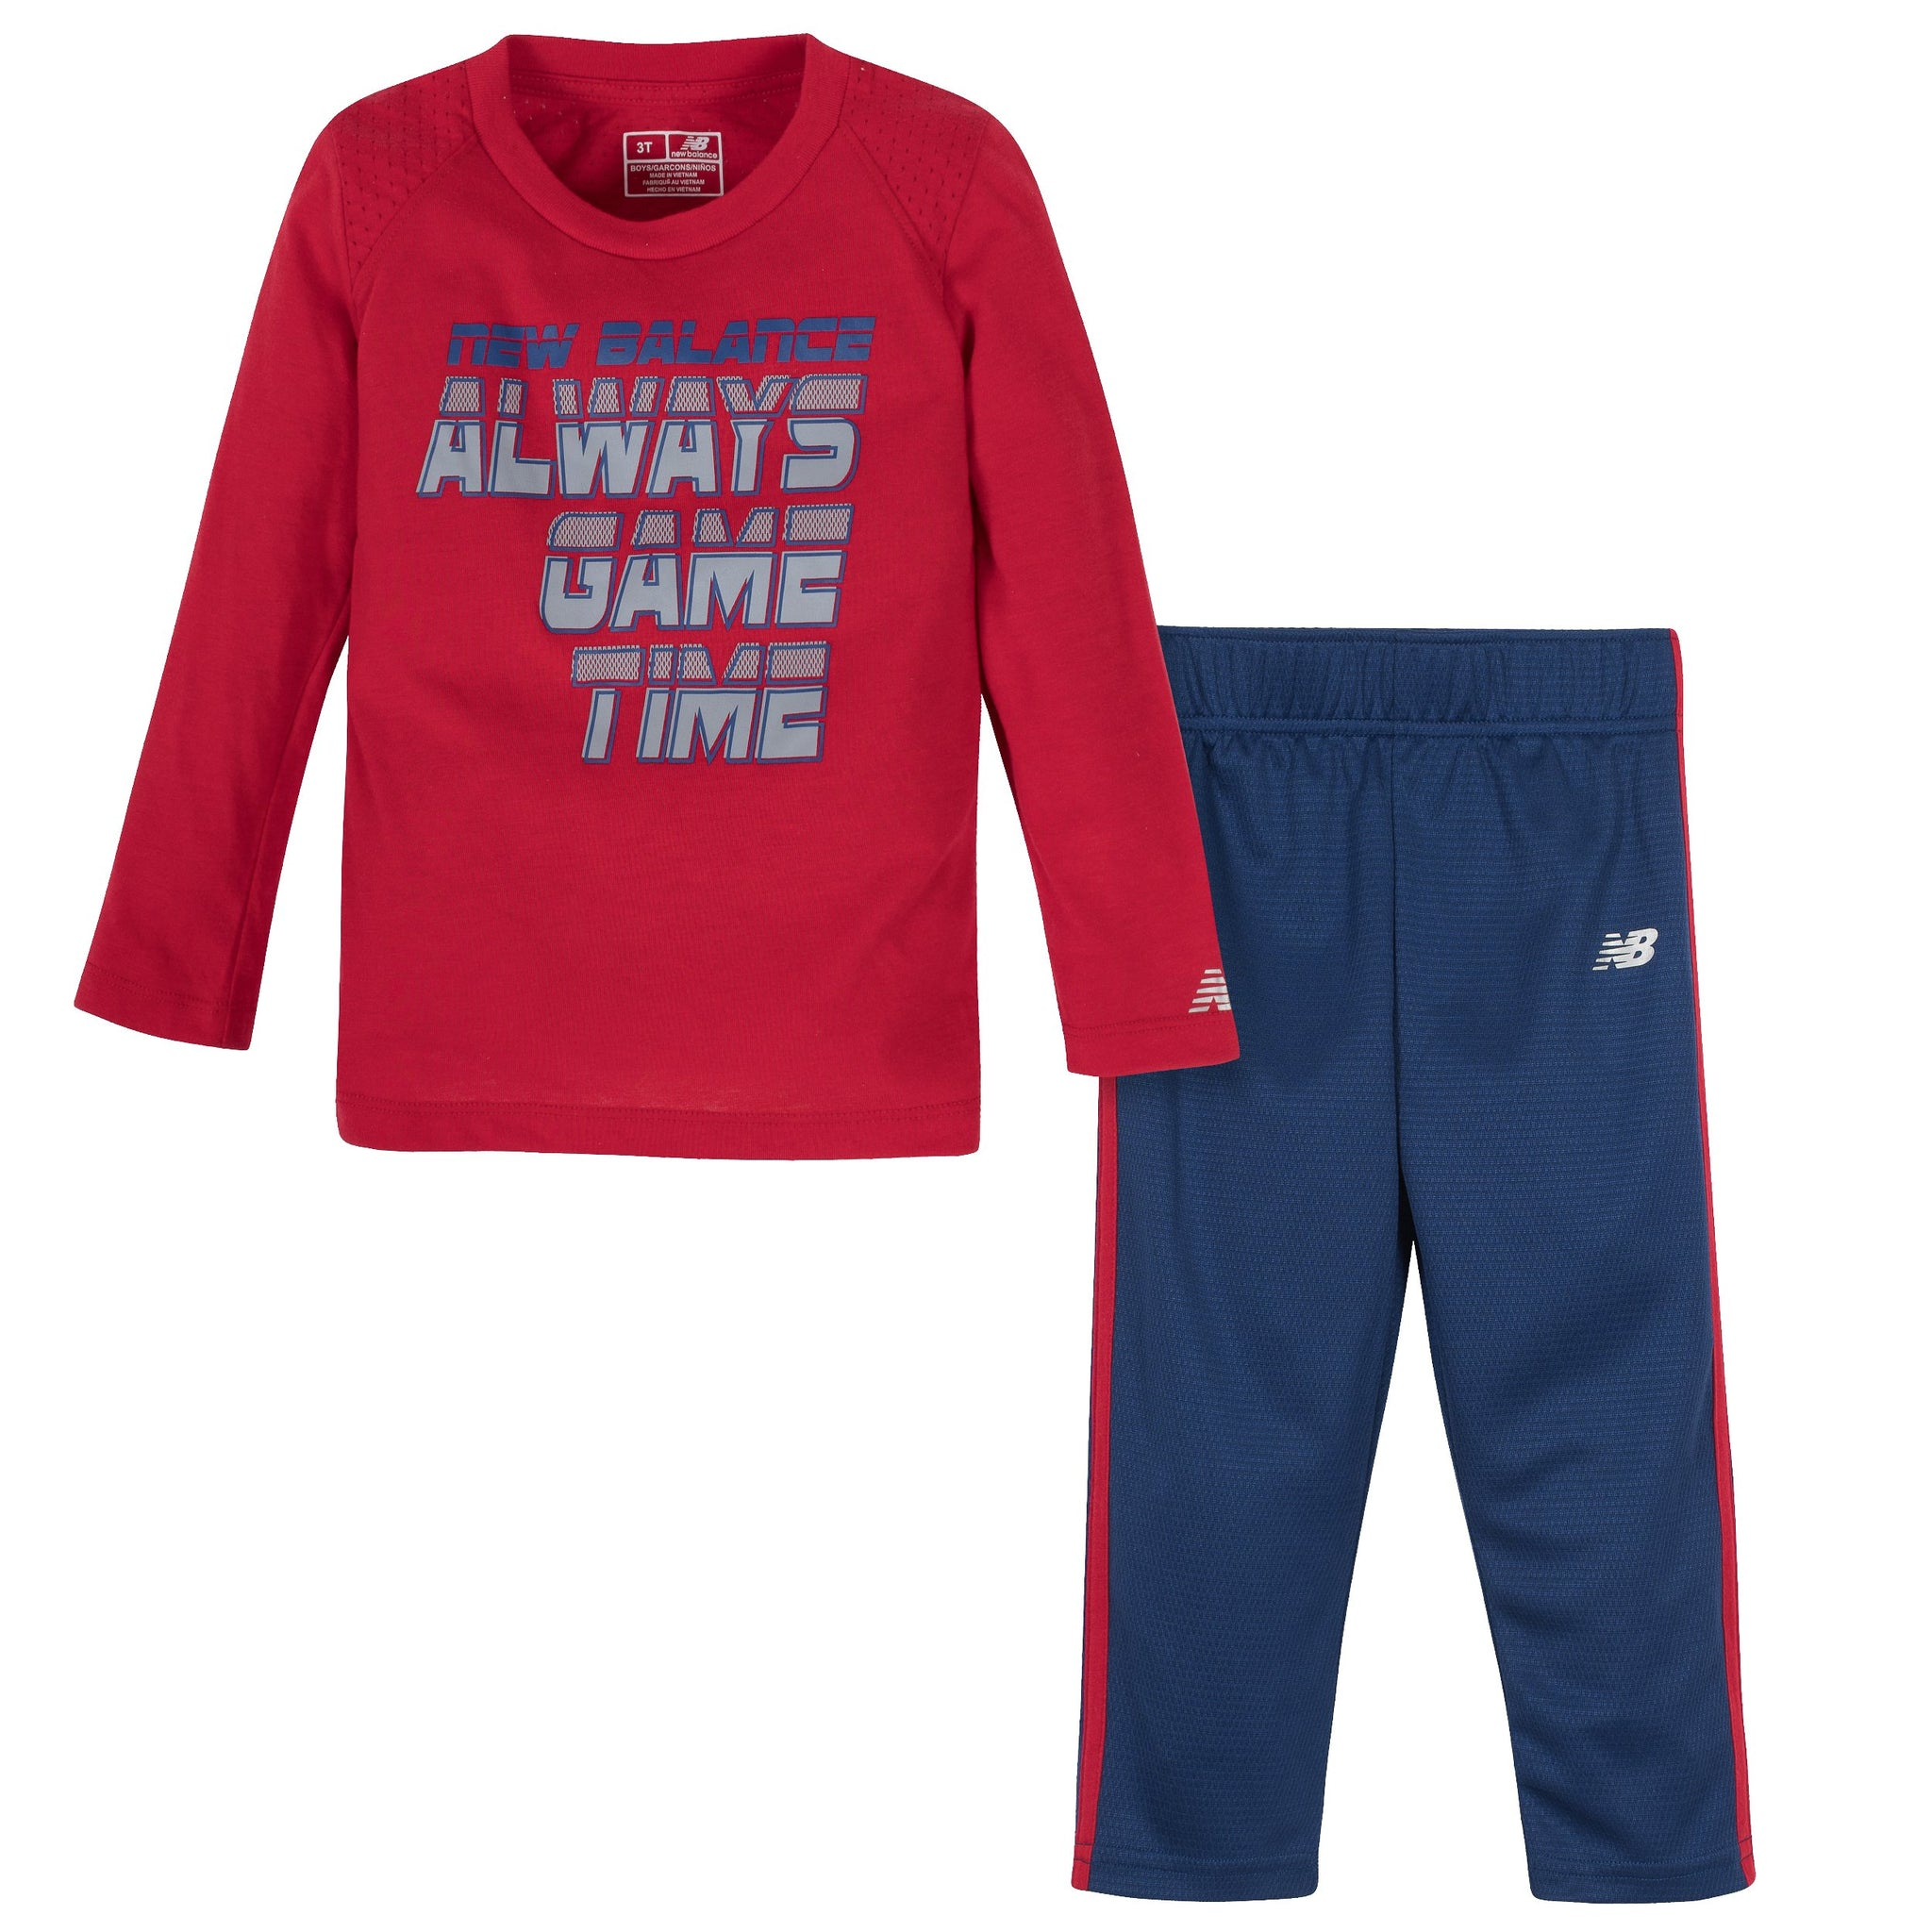 Boys' New Balance Tempo Red and Techtonic Blue Long Sleeve Shirt and Pant Set